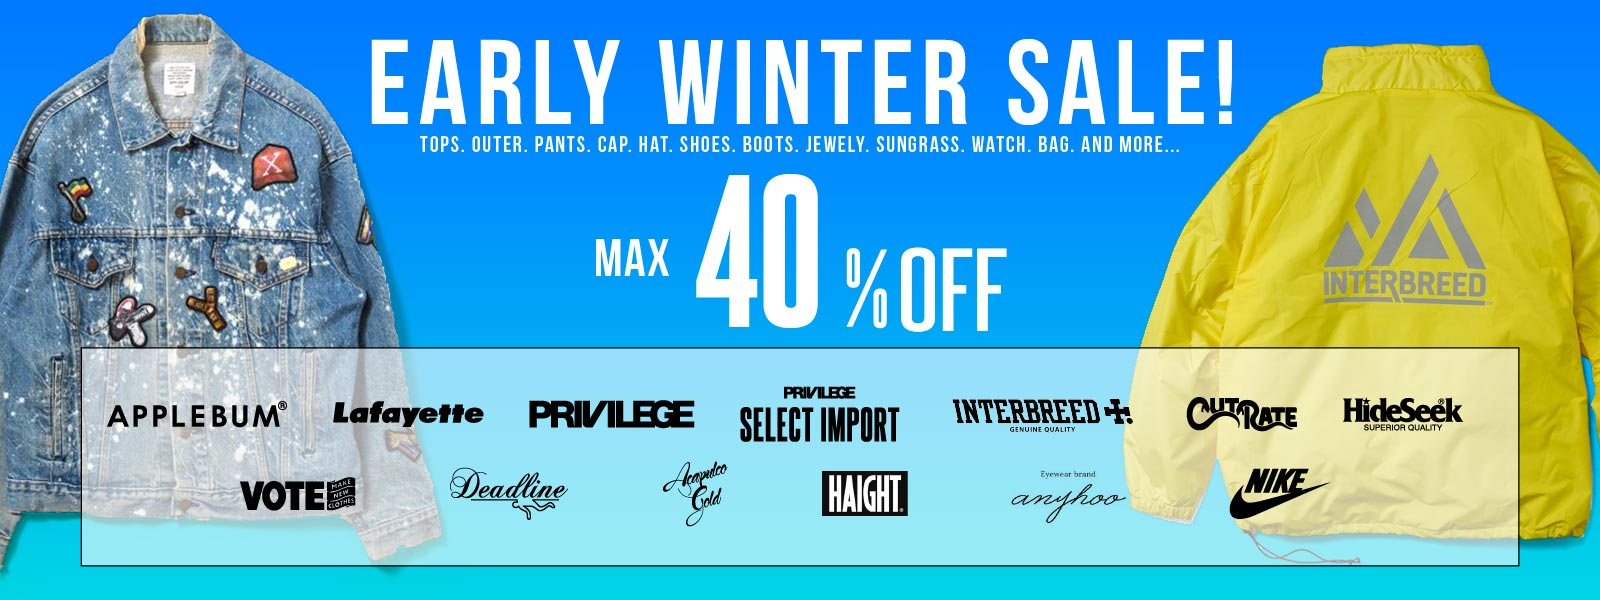 2018 EARLY WINTER SALE 開催中&新規会員1000円進呈&ポイント5倍!!